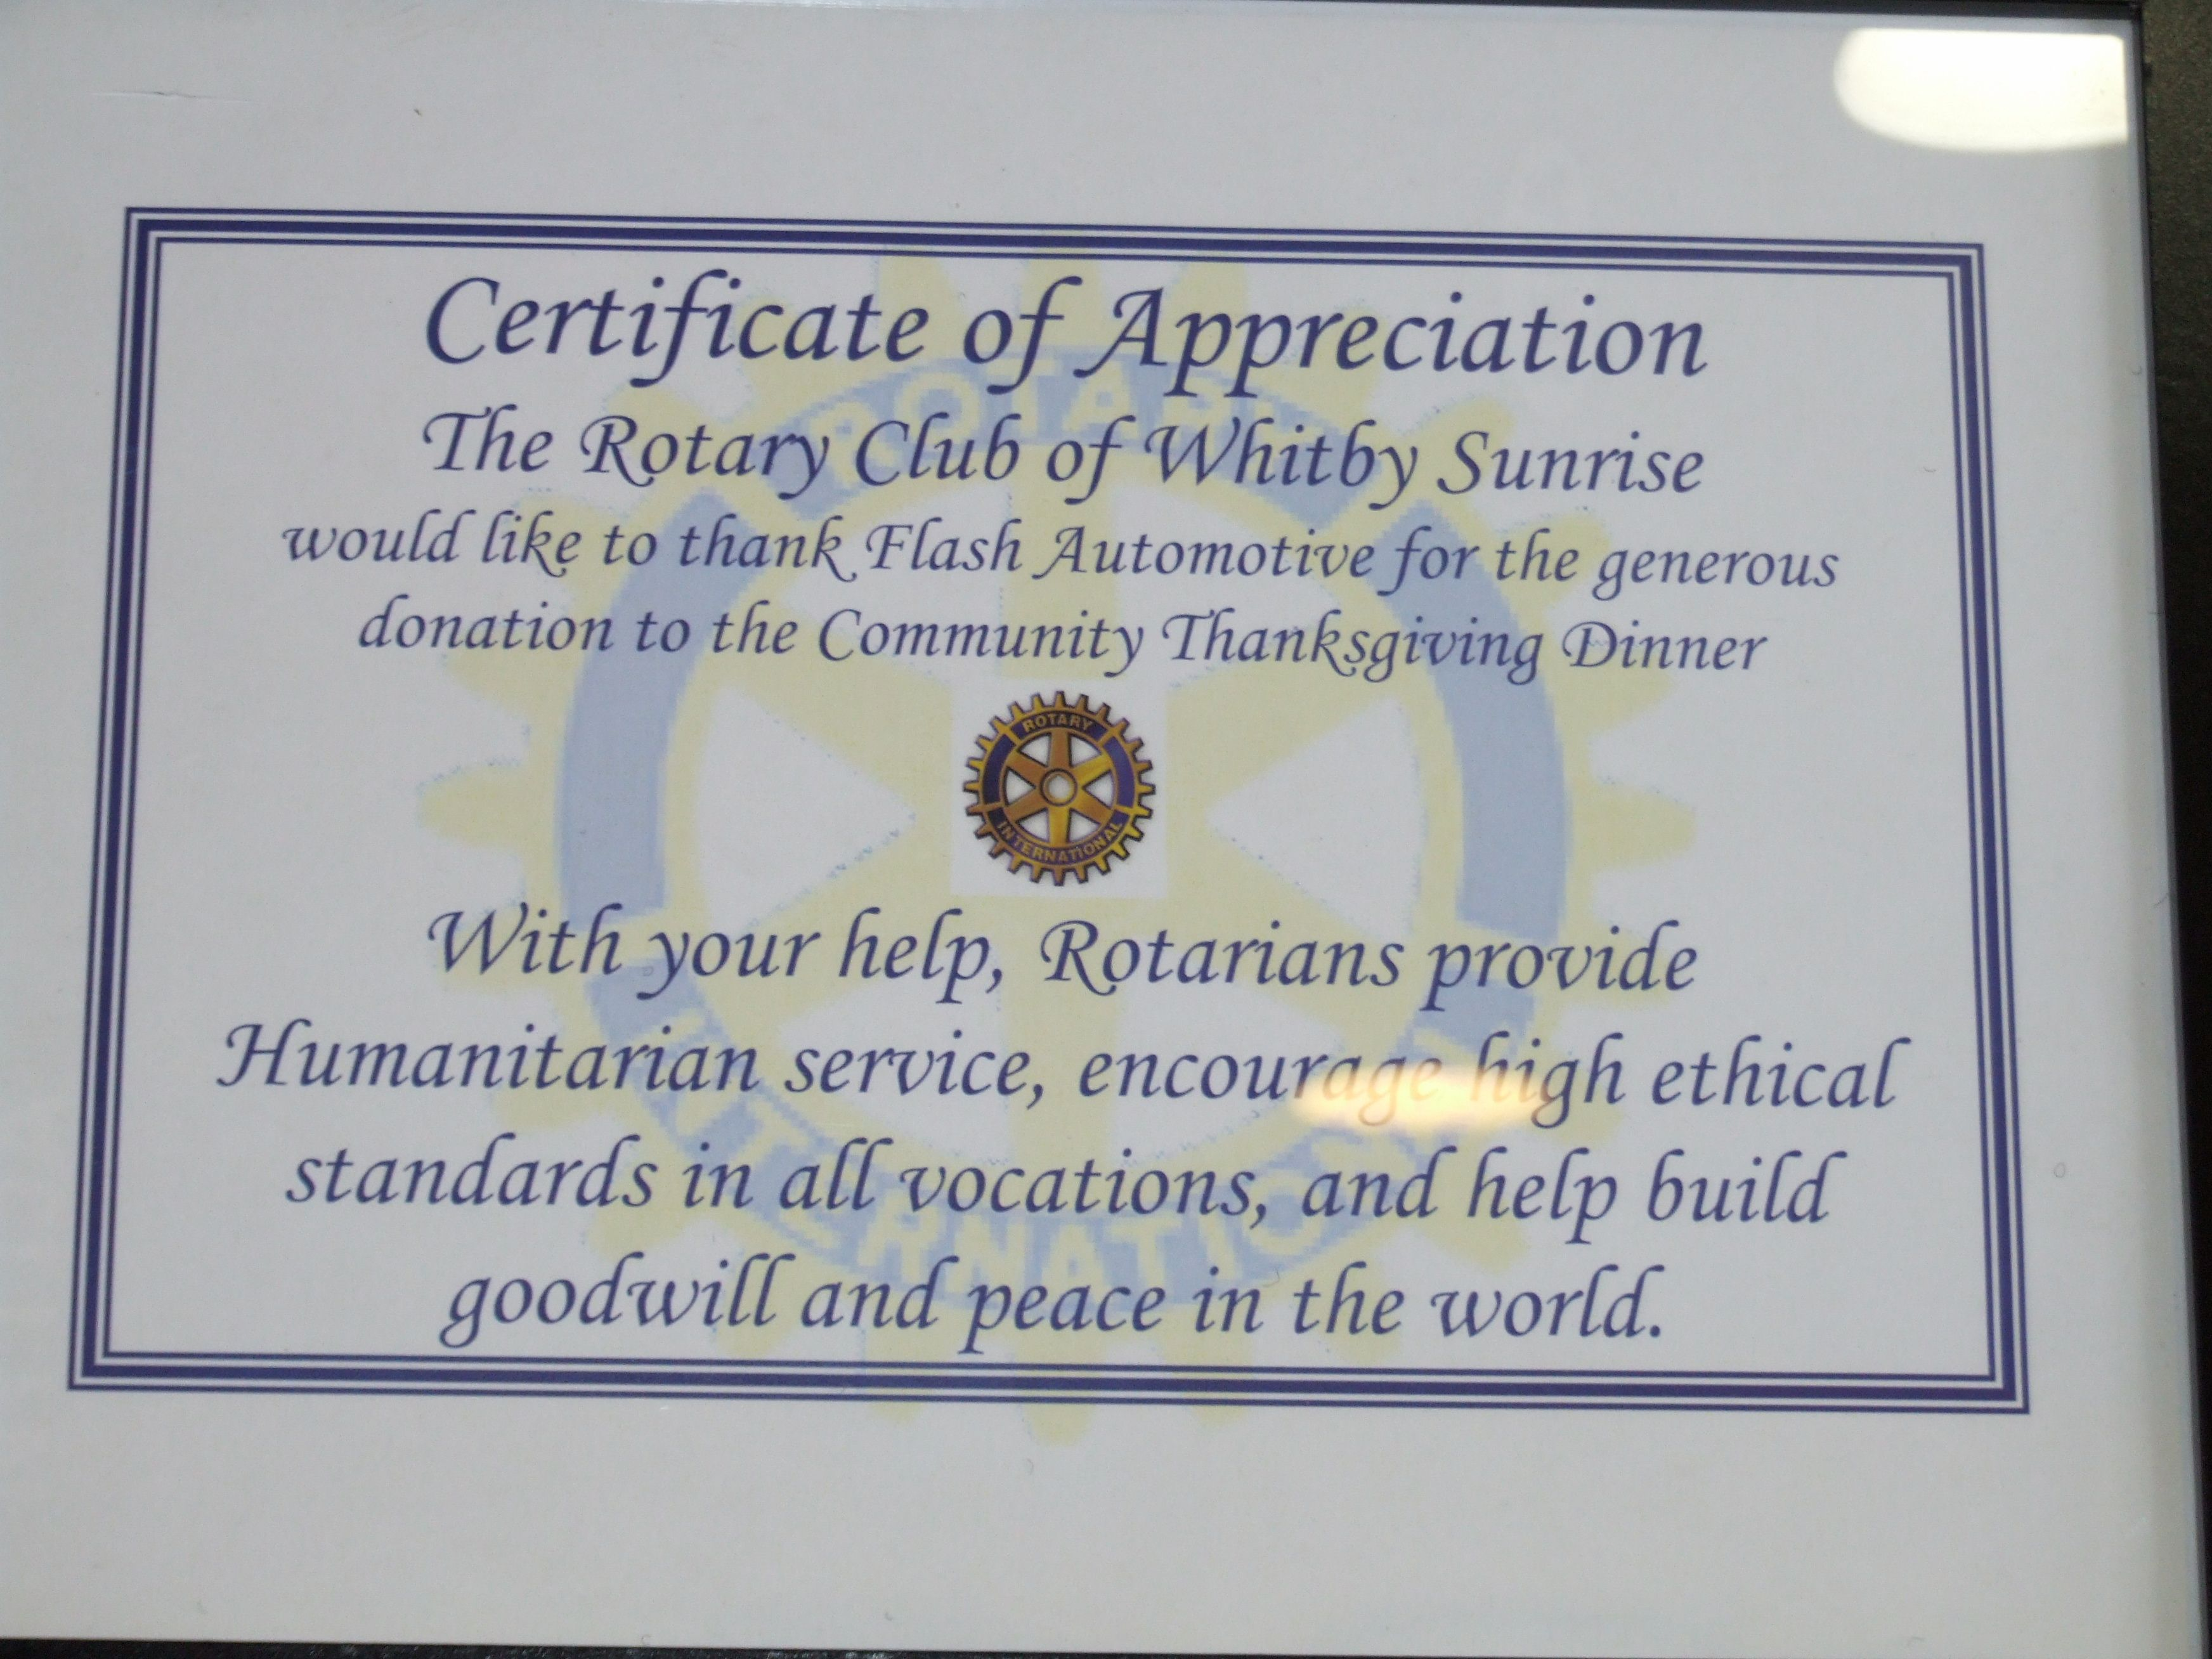 Certificate Of Appreciation From The Rotary Club Whitby Sunrise